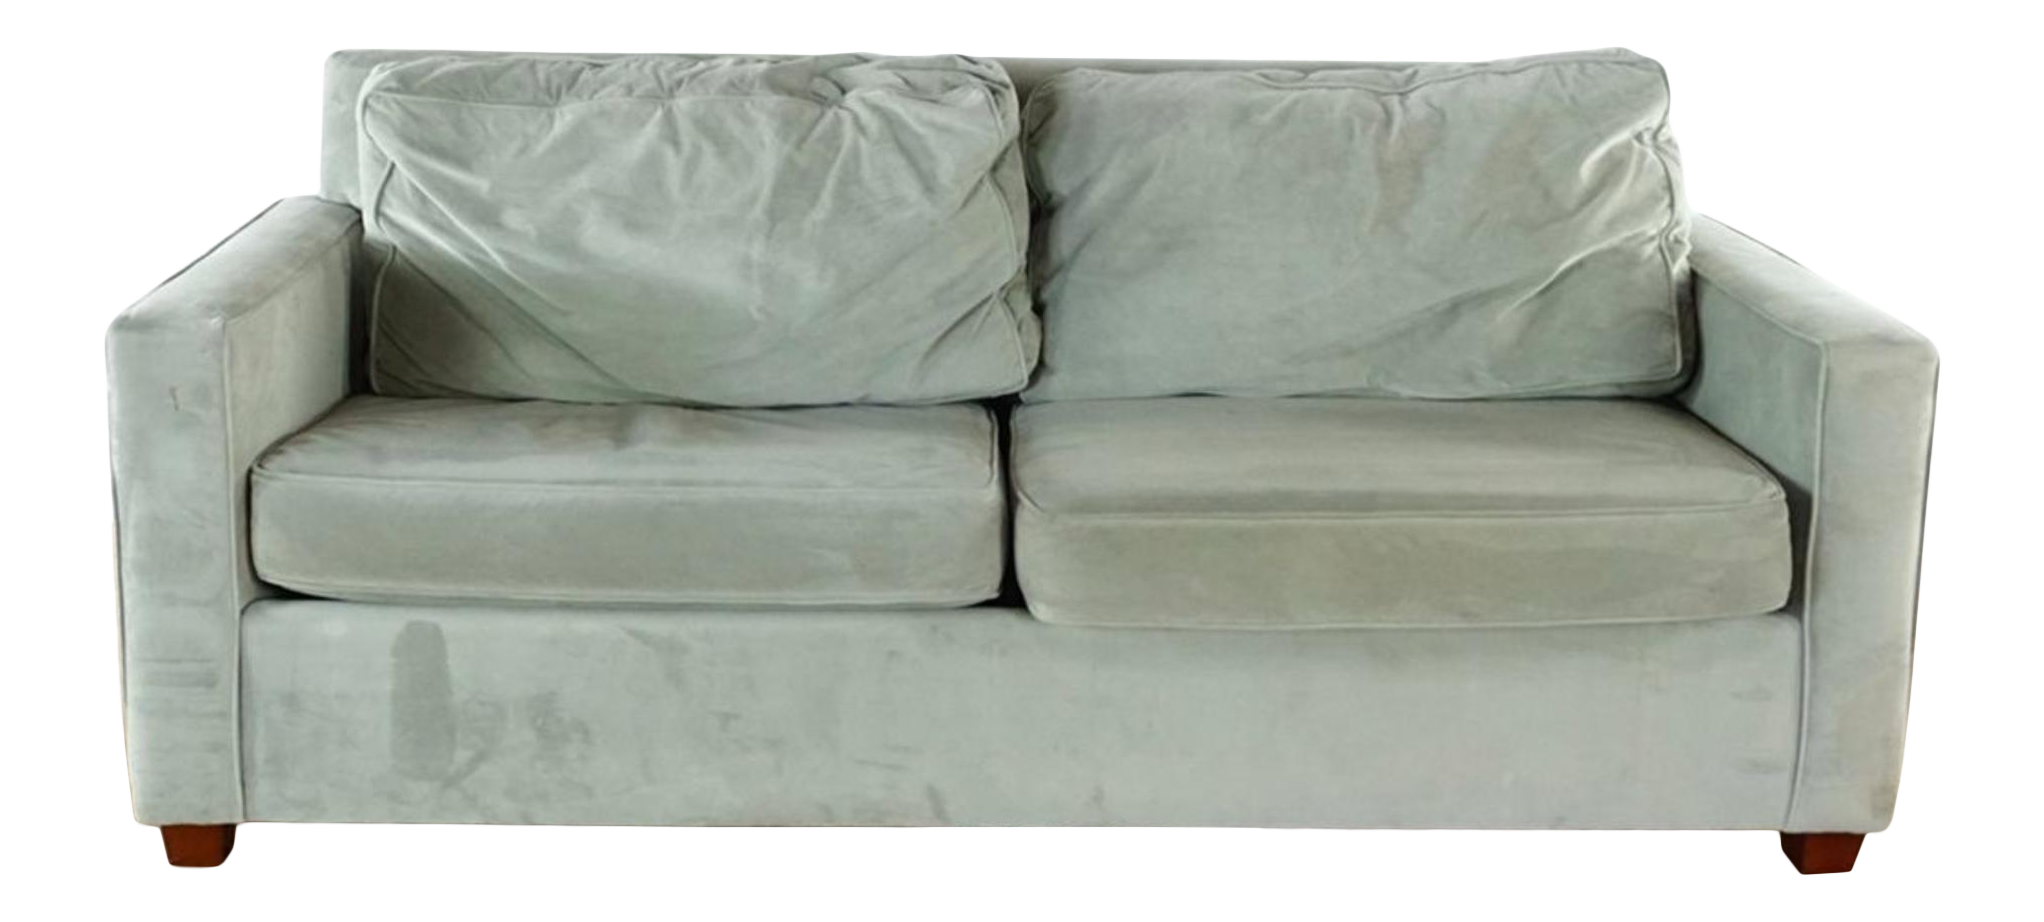 Modern West Elm Contemporary Gray Upholstered Two Cushion Sleeper Sofa For  Sale